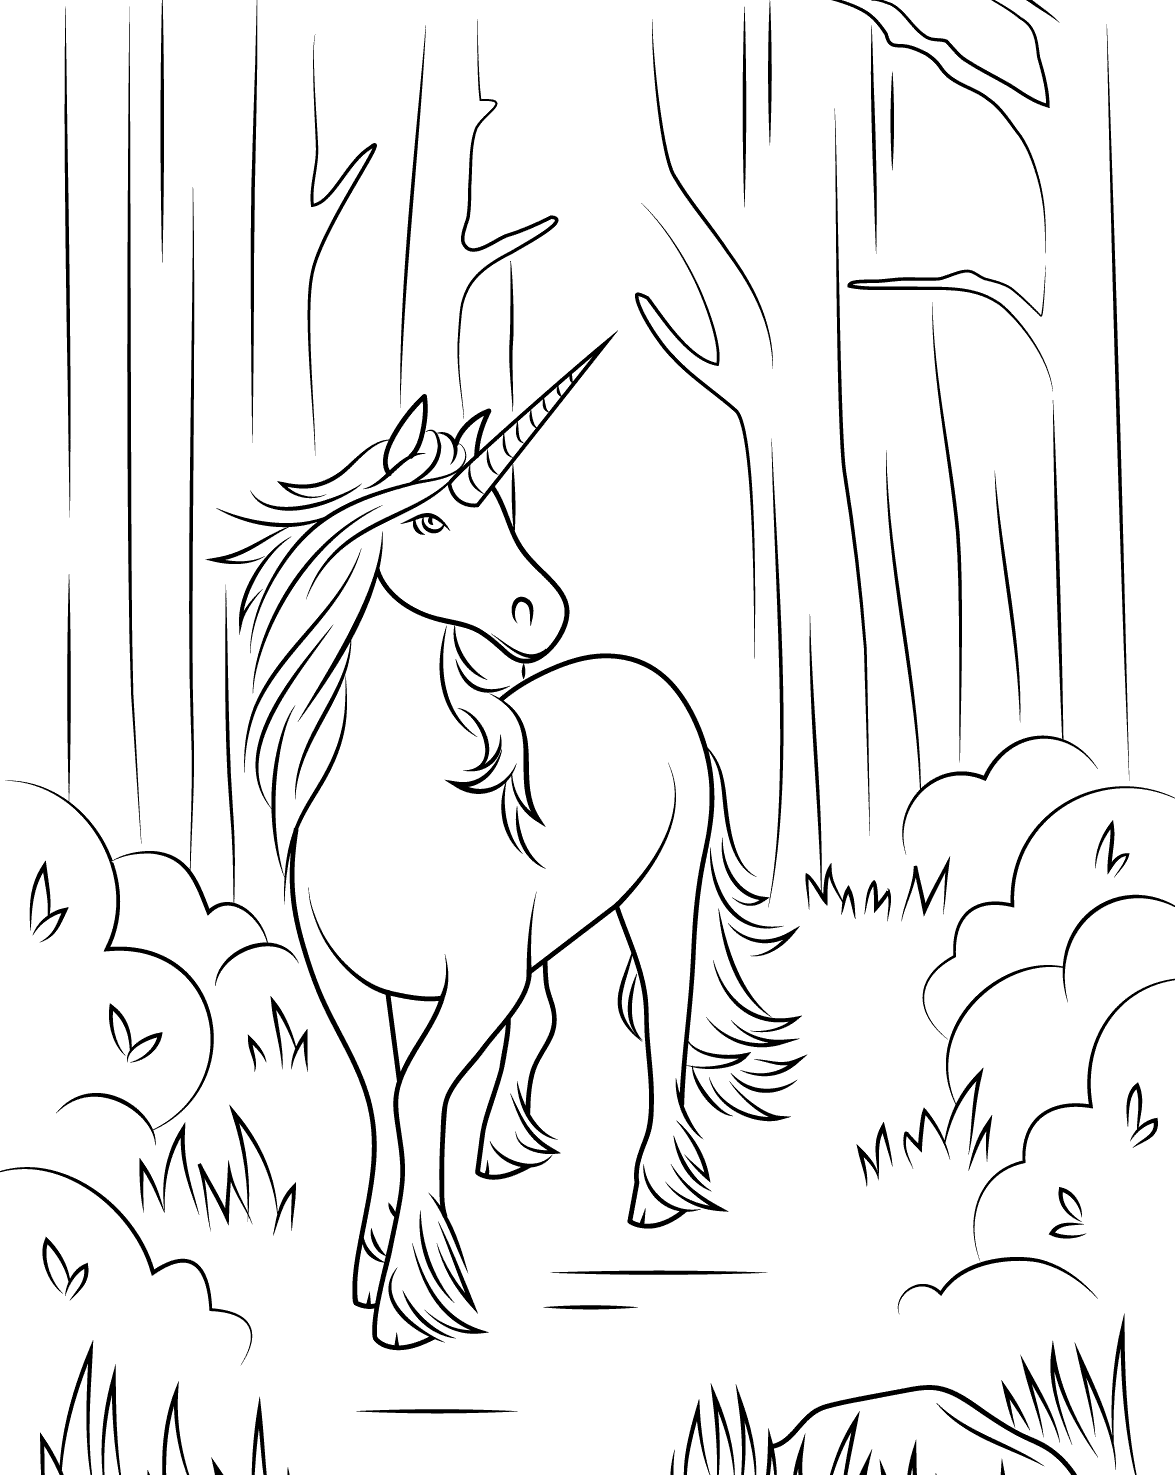 Top 100 magical unicorn coloring pages: The ultimate (free ... | 1475x1175